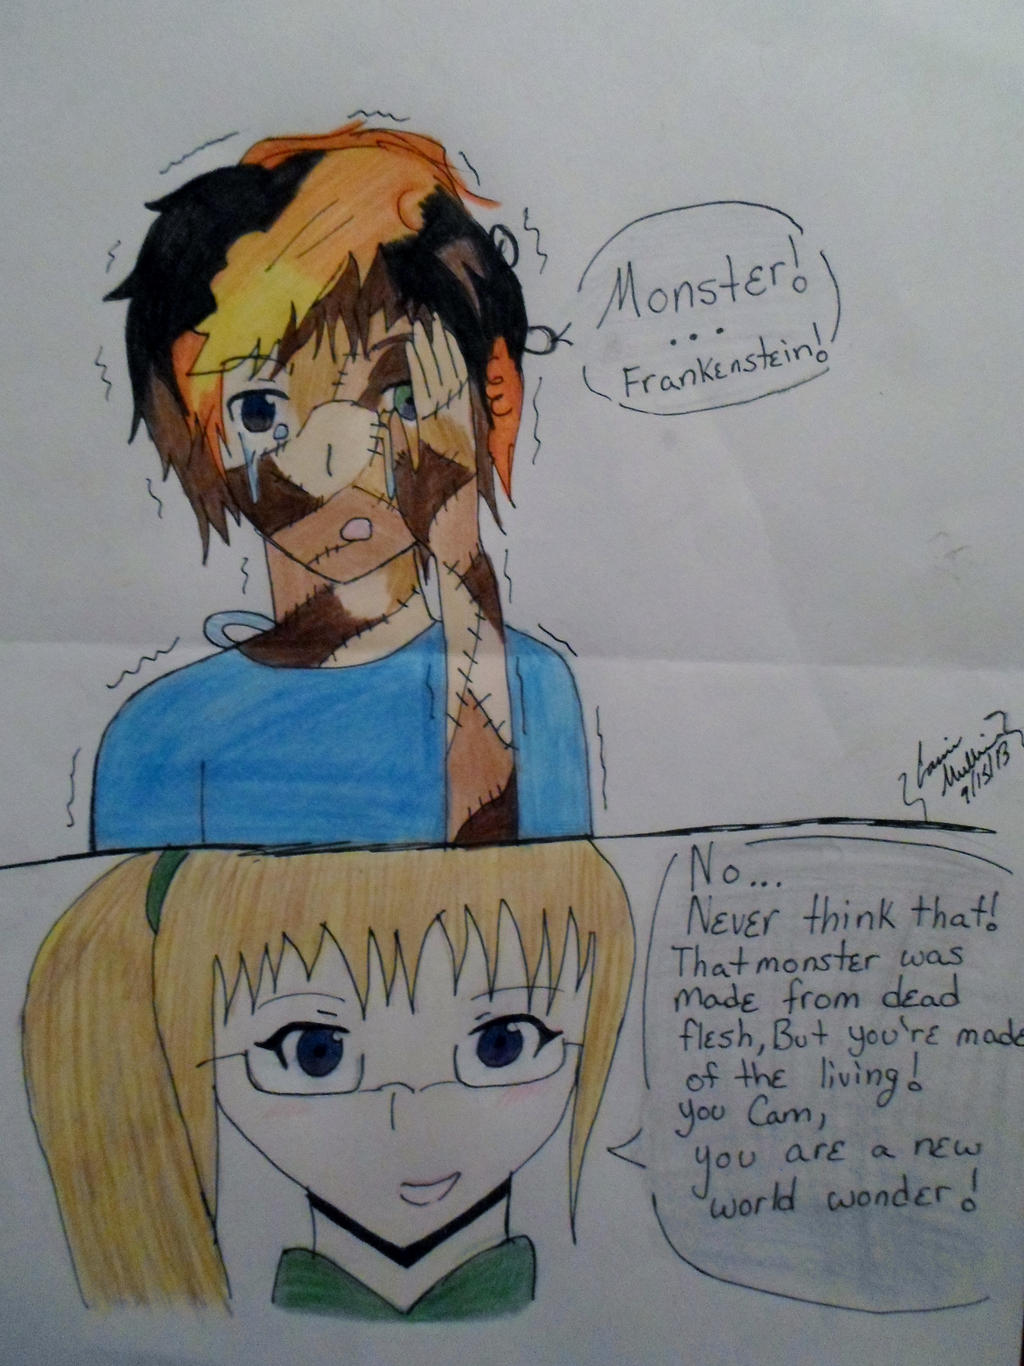 Unwholly Fanart Cam's Appearance By Xxhaileemiyokeexx Unwholly Fanart Cam's  Appearance By Xxhaileemiyokeexx